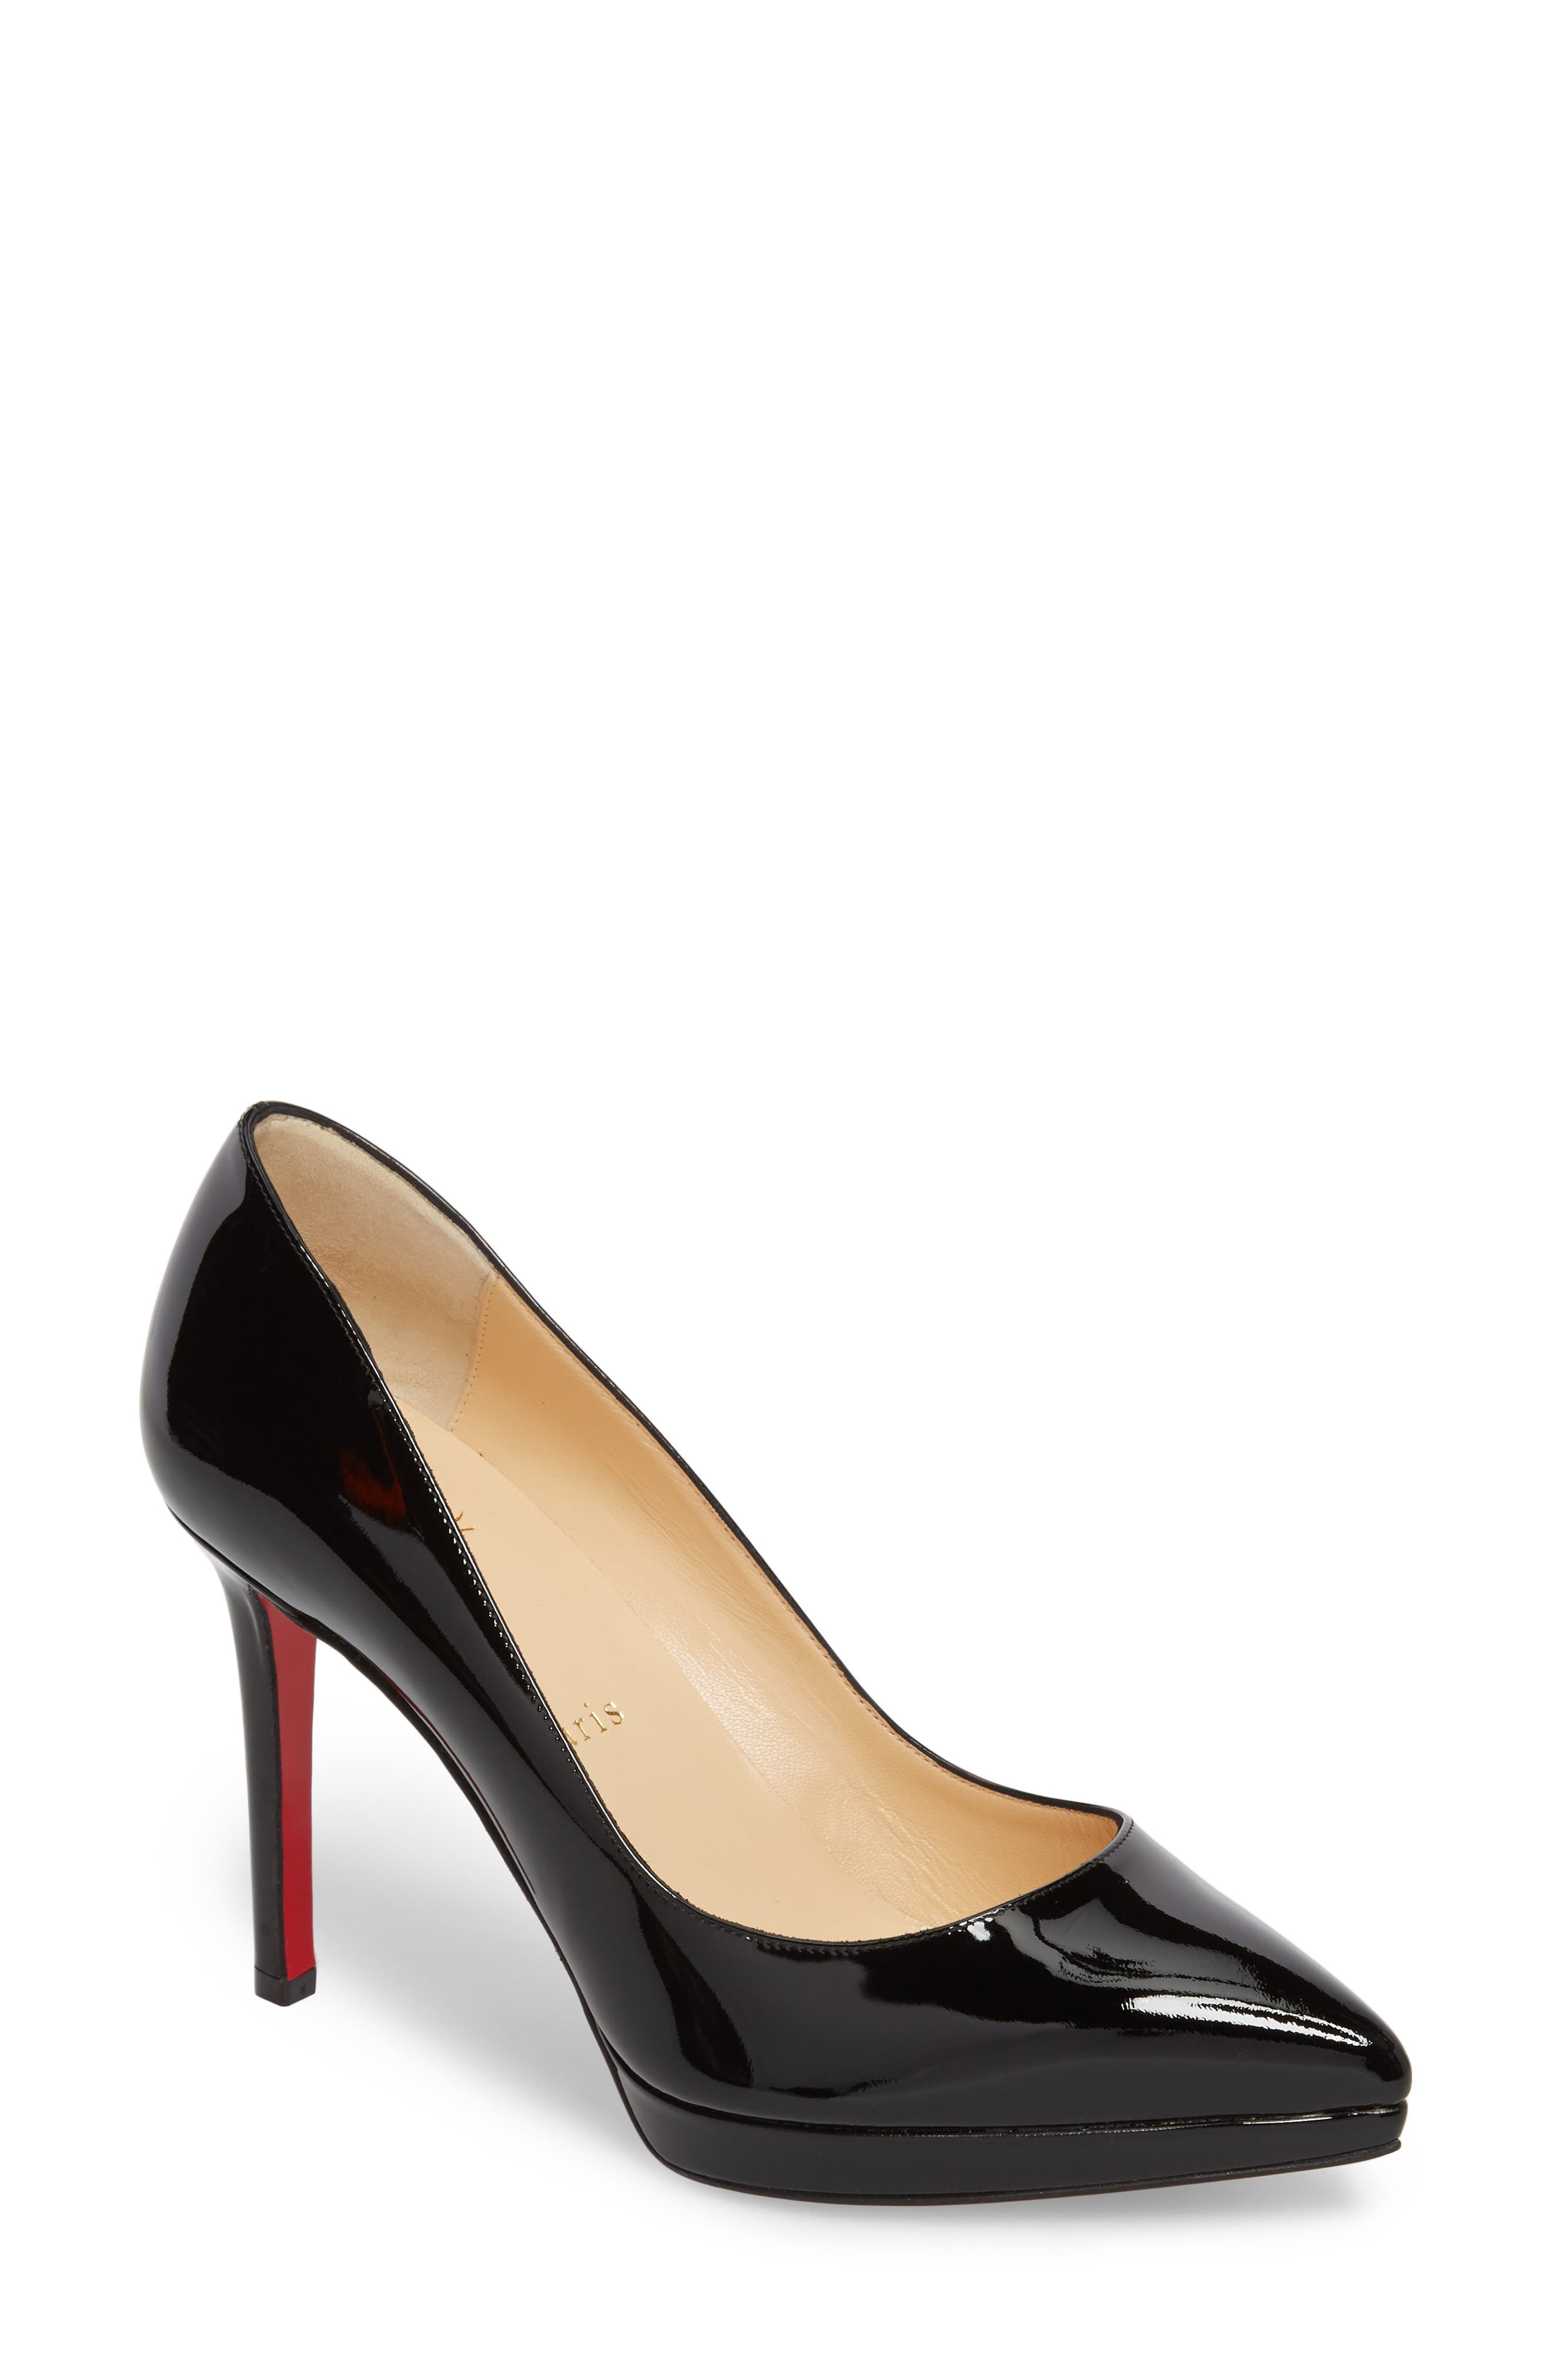 CHRISTIAN LOUBOUTIN Pigalle Plato Pointy Toe Platform Pump, Main, color, BLACK PATENT